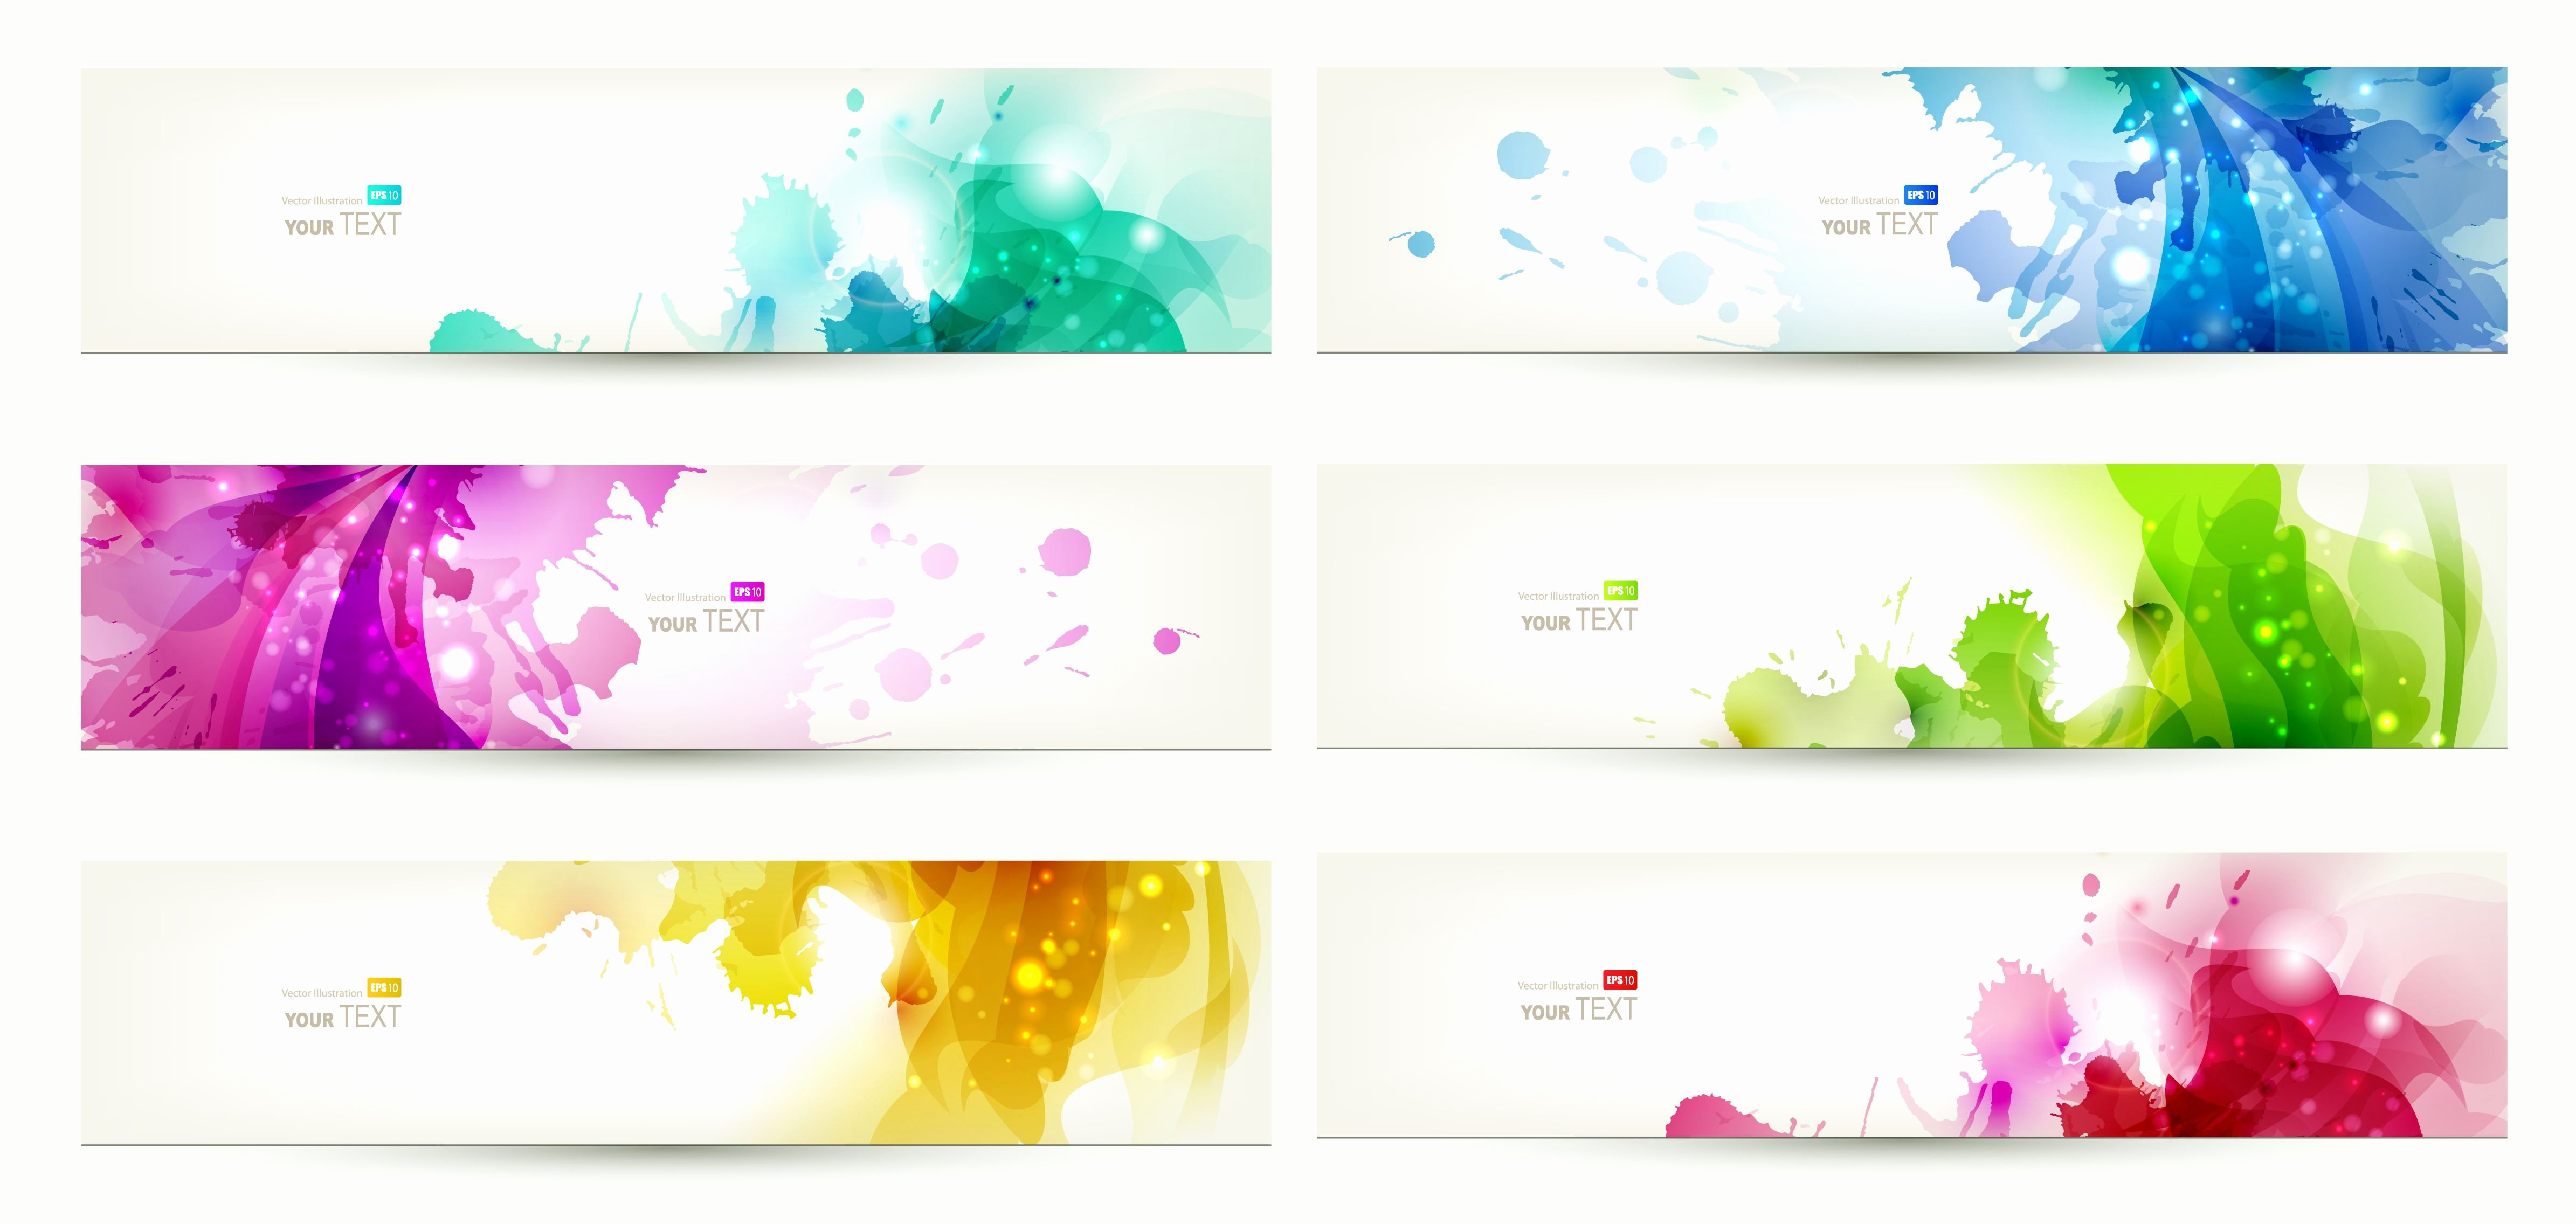 Email Template Background Image Fresh Free Vector Banner Templates Banner Design